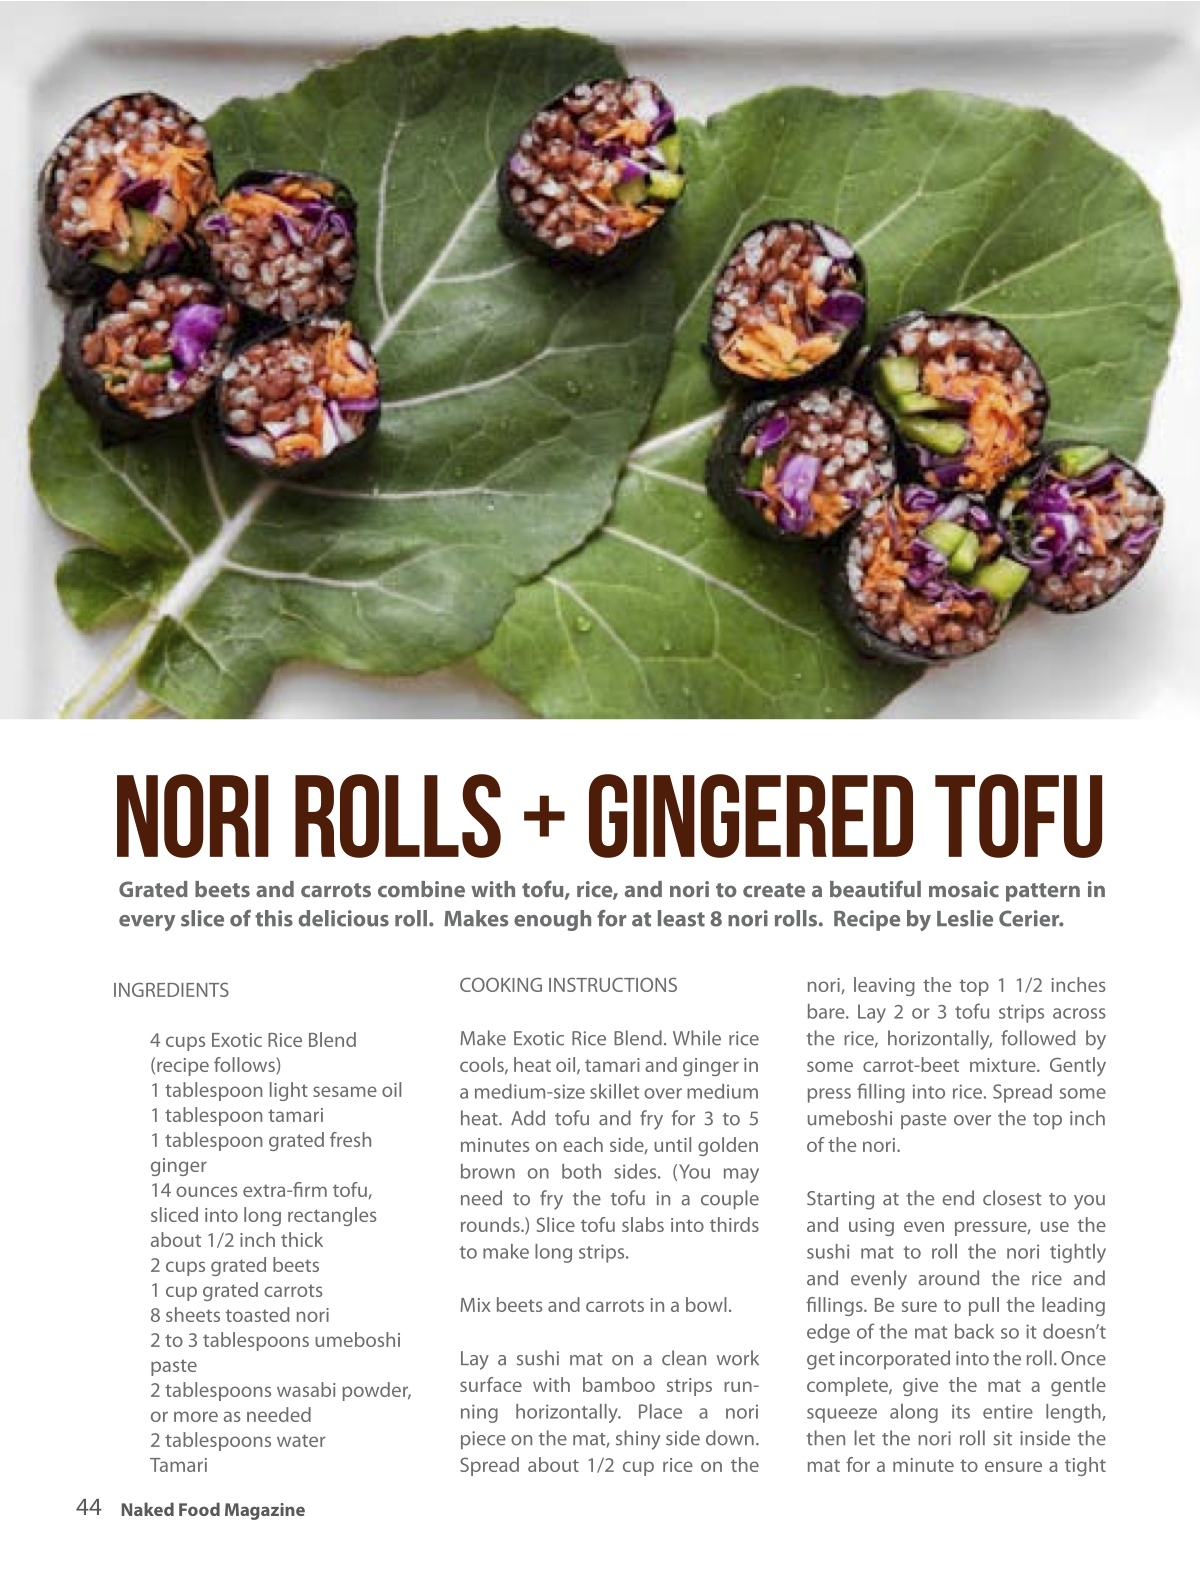 Exotic rice blendleslie cerier leslie cerier nori rolls ginger tofu reprinted from gluten free recipes for the conscious cook forumfinder Image collections